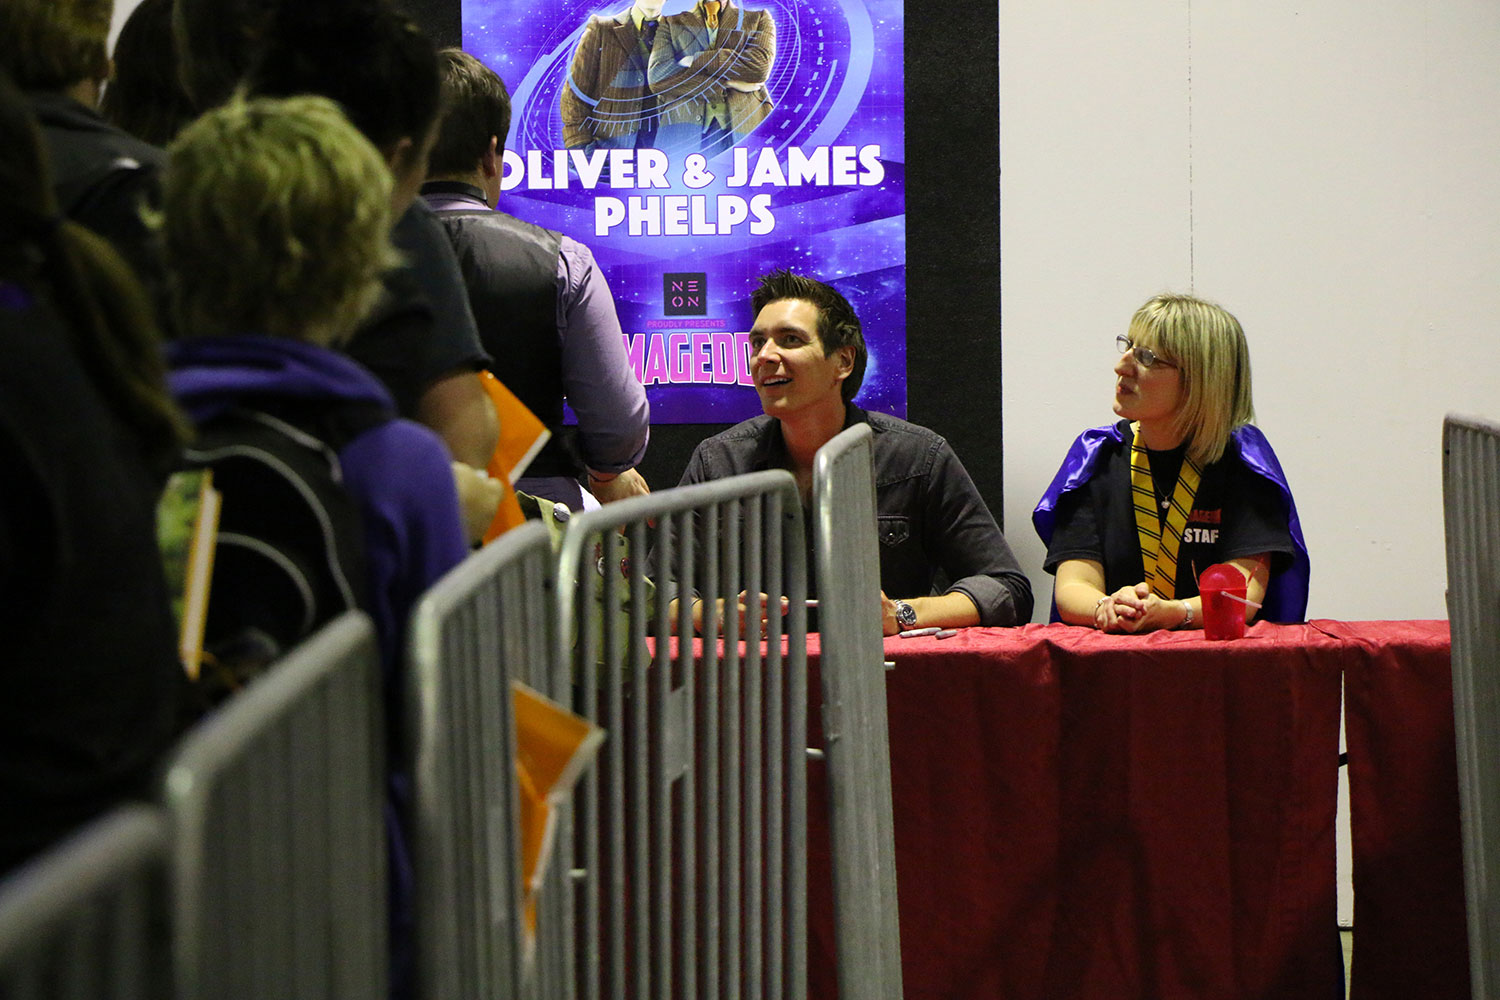 Armageddon Expo 2016 – Auckland – Oct 22 – James and Oliver Phelps Autograph Signing – 3 (Photo credit: Tracey Wong)